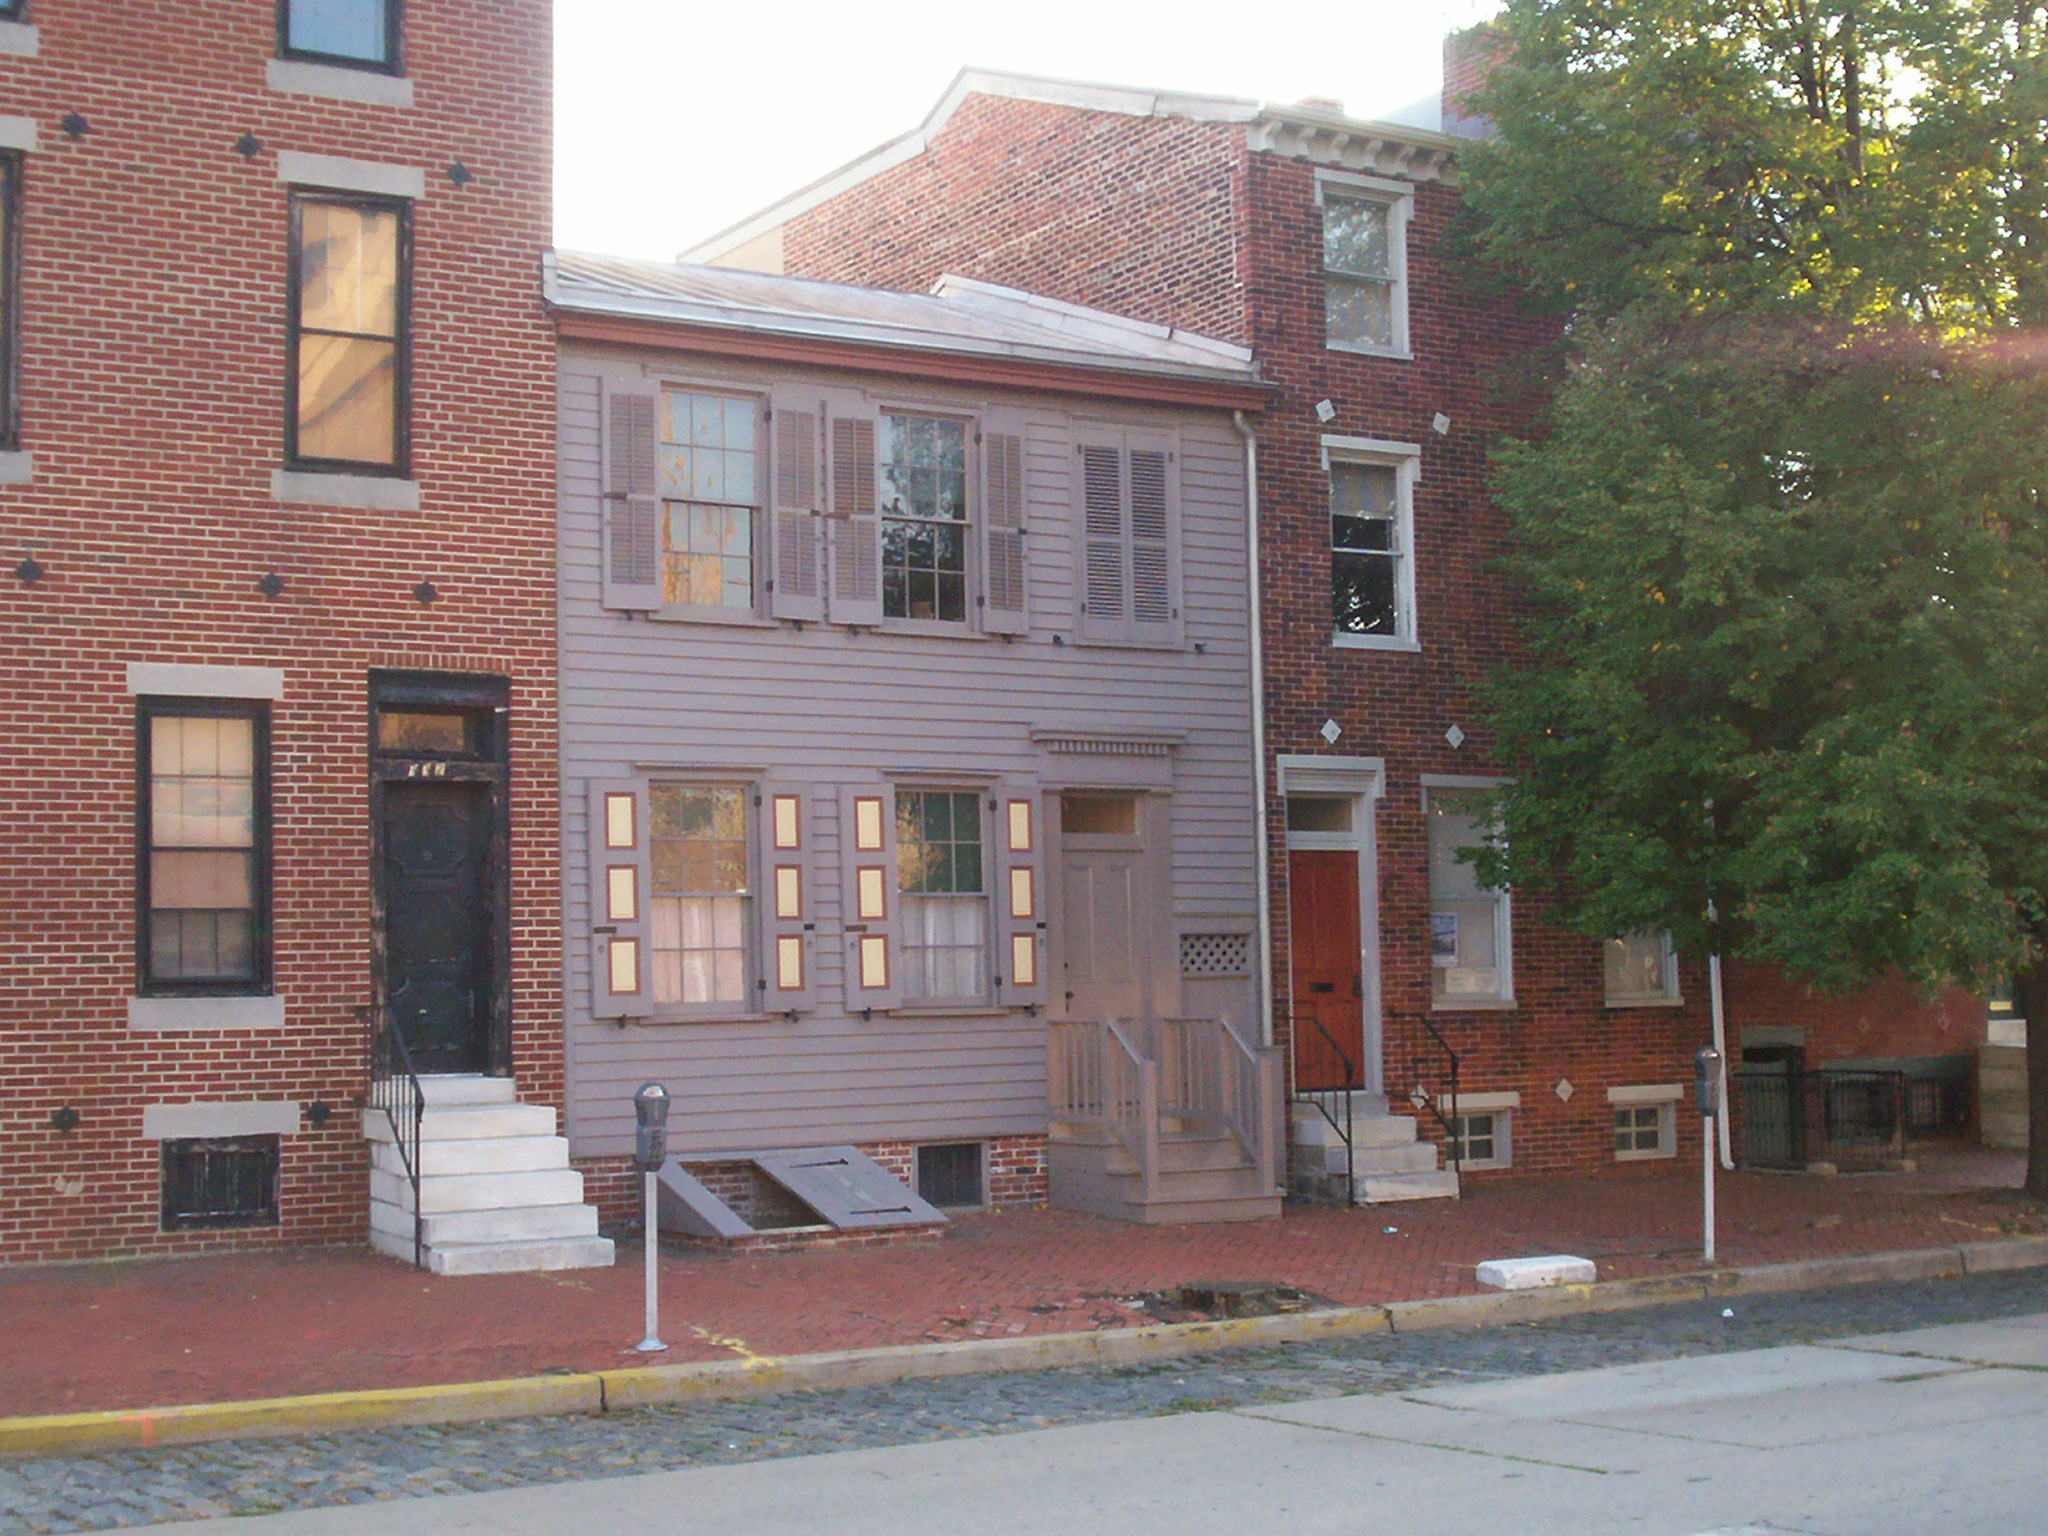 The Whitman House at 330 Mickle Street